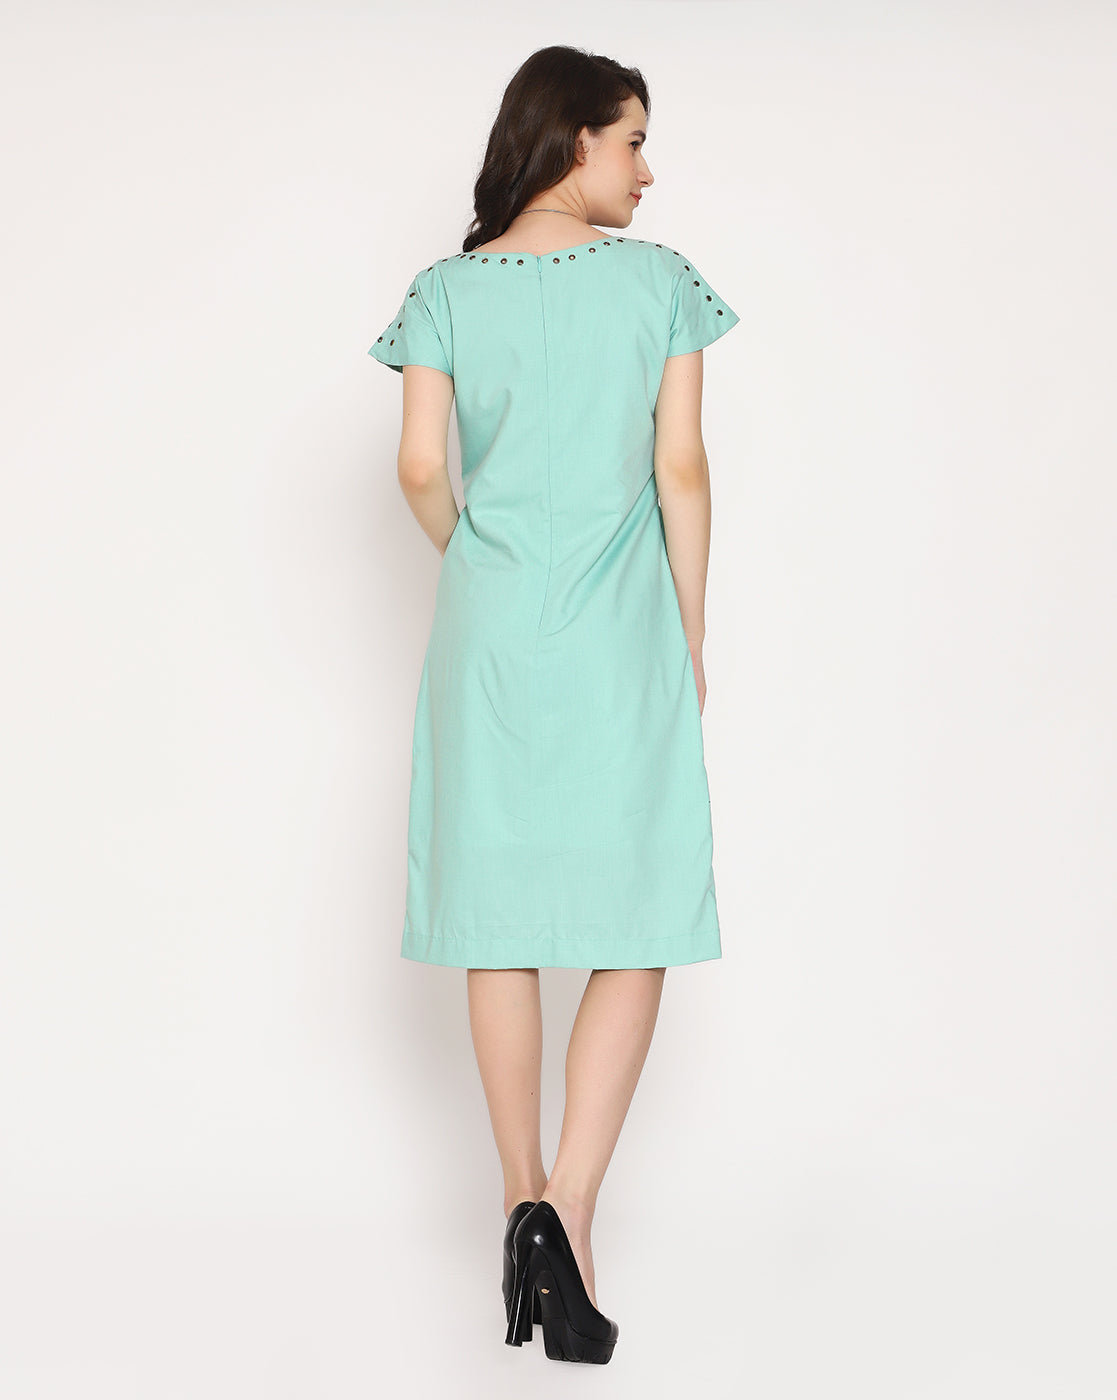 The Victorian Eyelet Dress - Sea Green